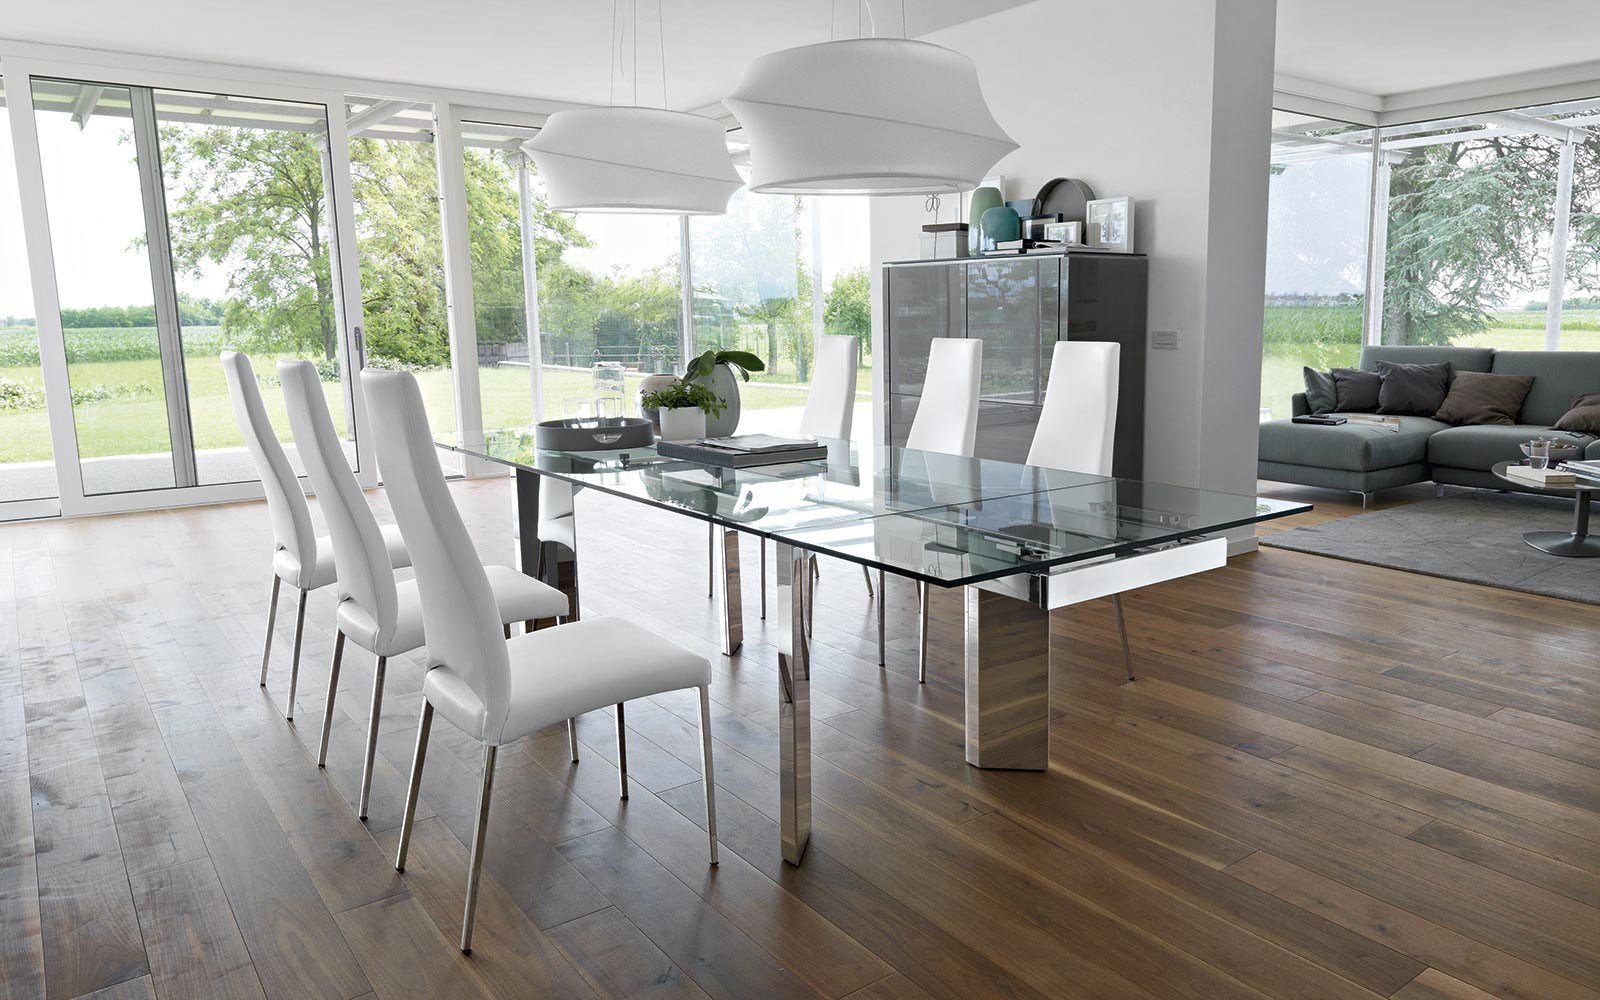 TOWER Glass table by Calligaris